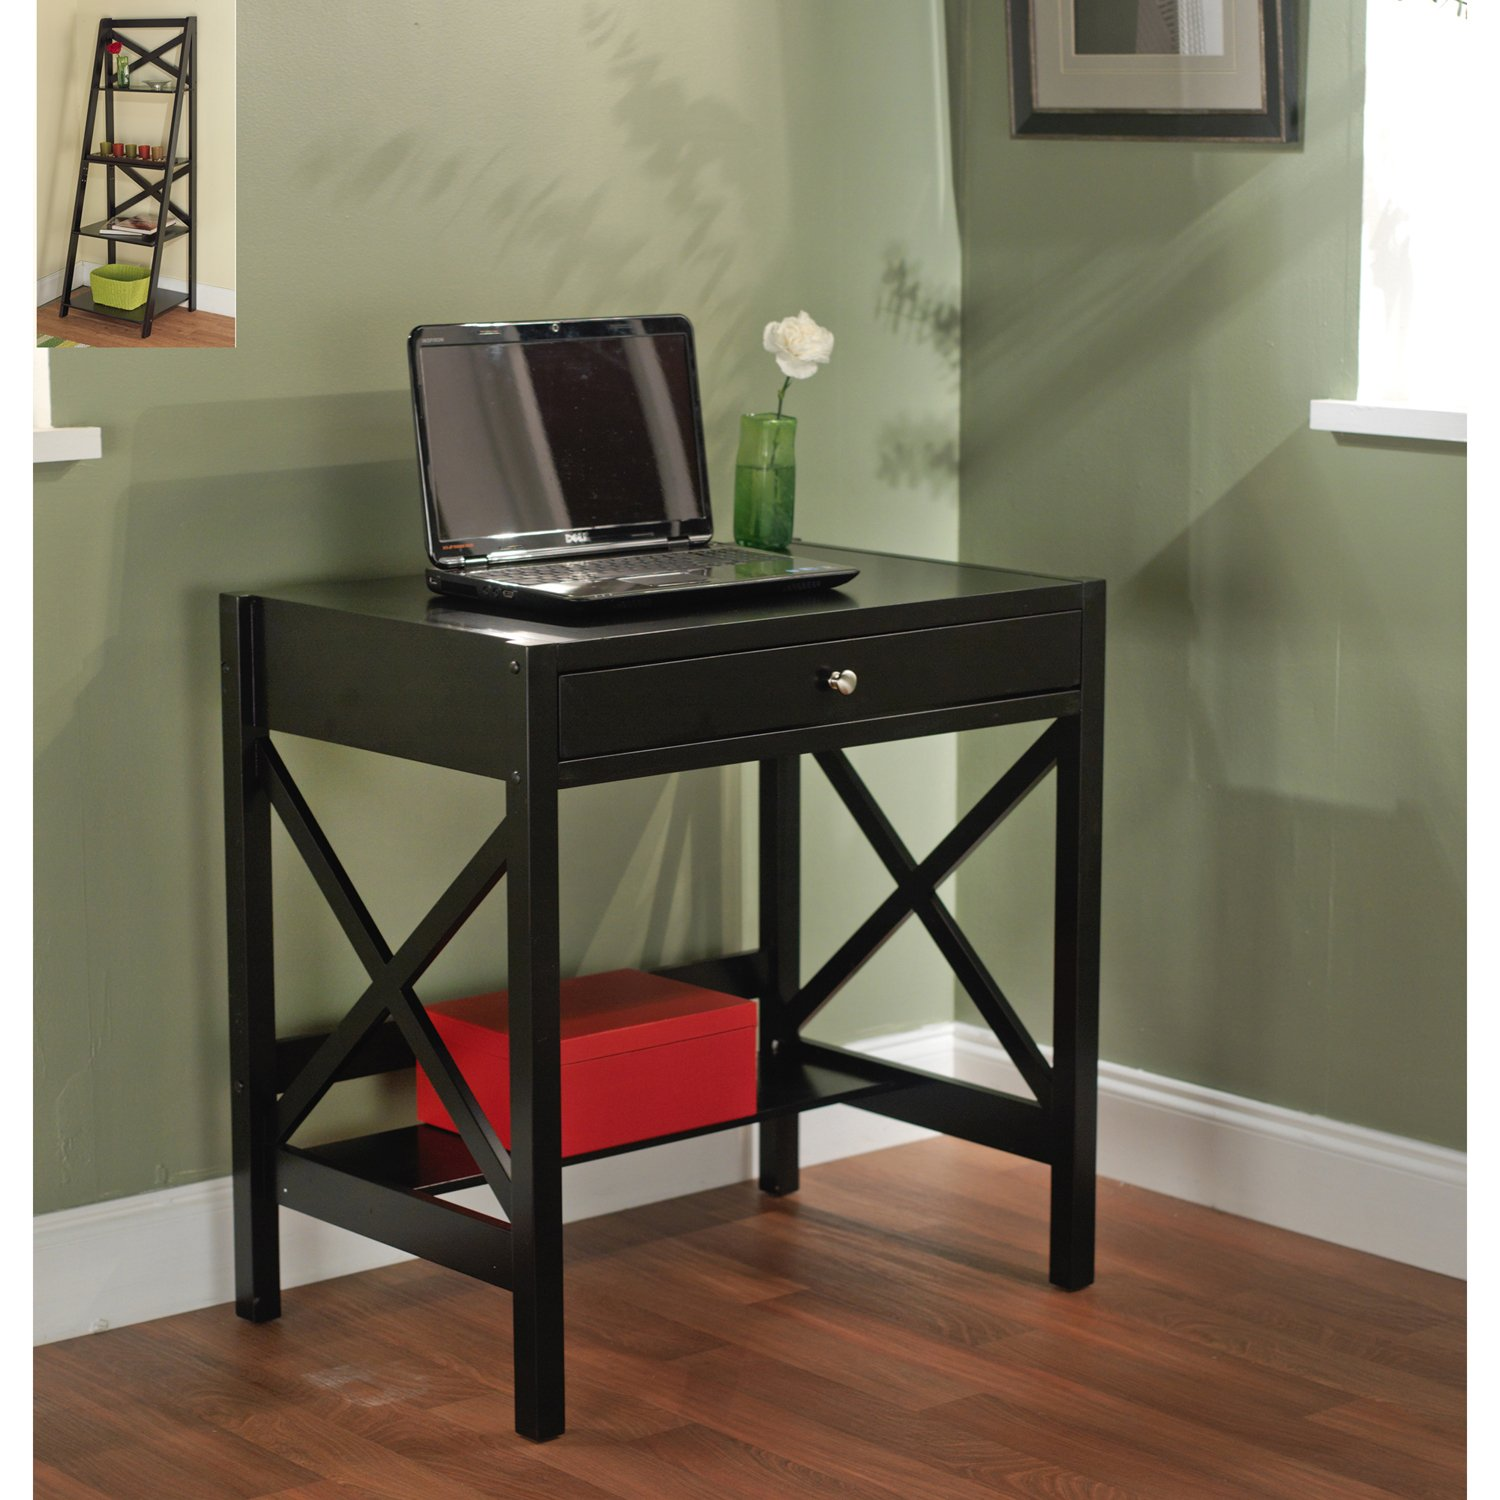 Simple Living - Best Choice Wooden Black Writing Desk with 1 Drawer and Shelf (Classic X Design) by Simple Living Products (Image #1)